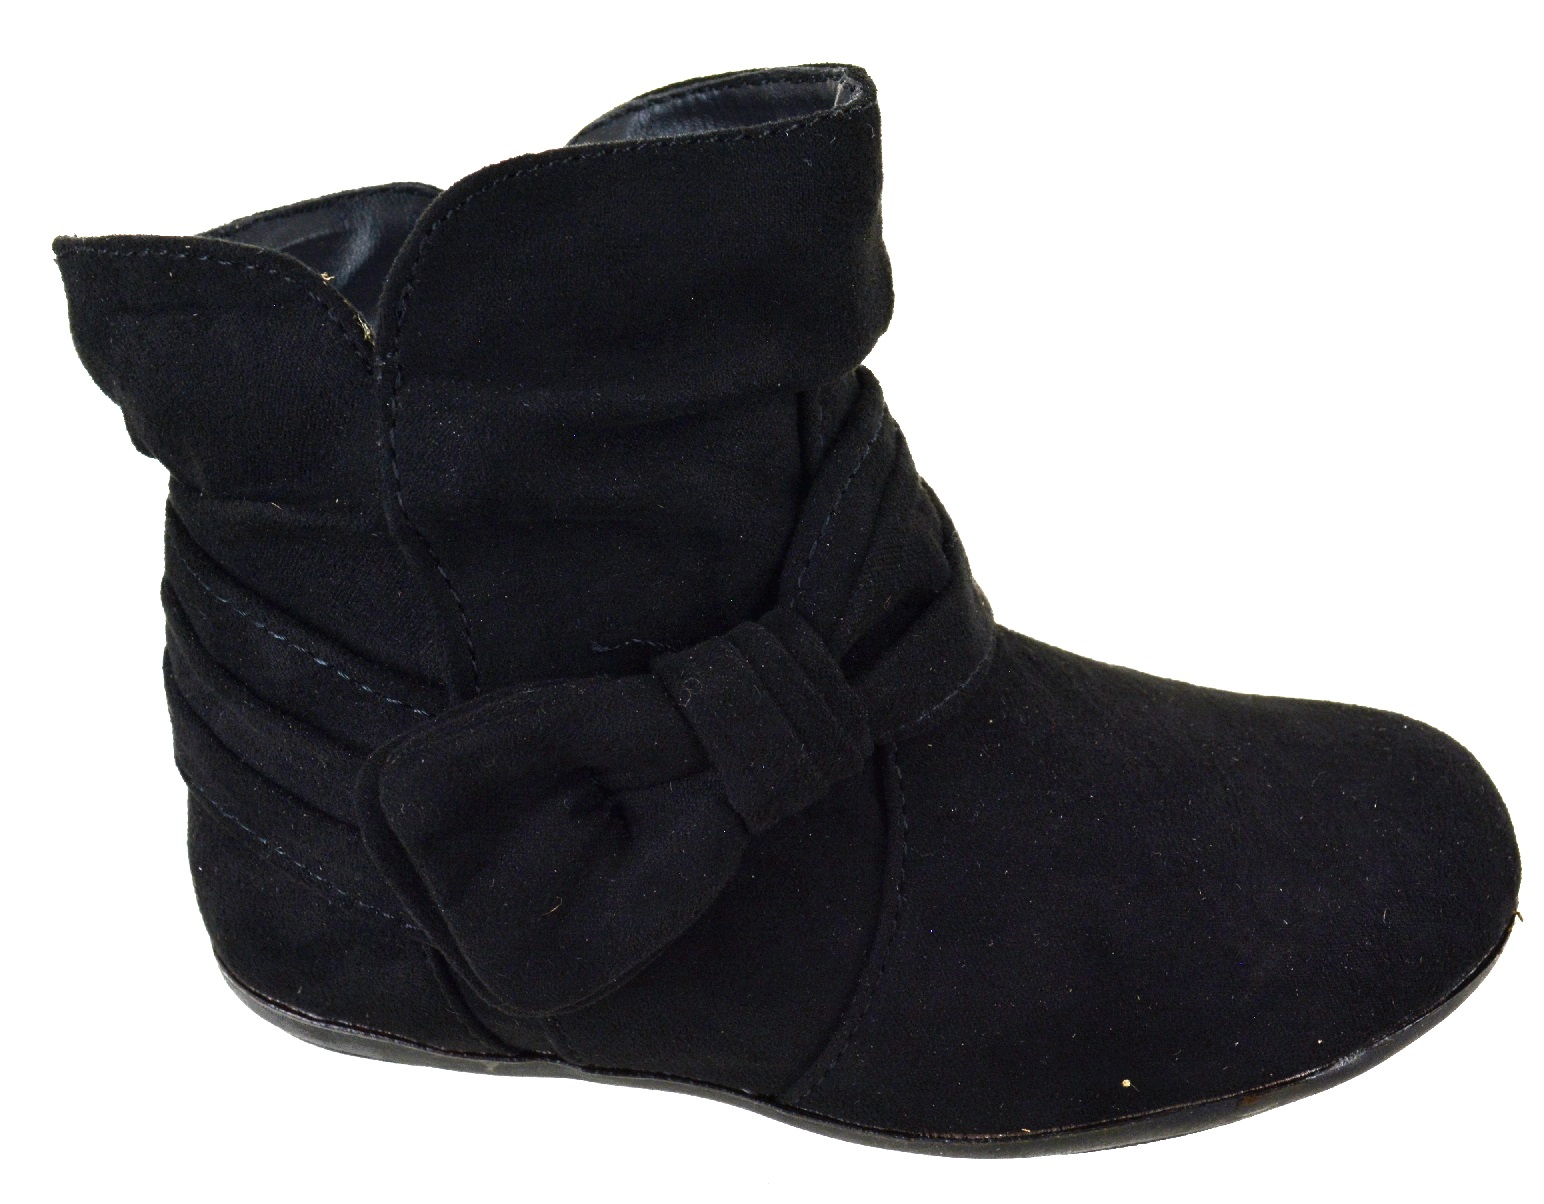 Details about KIDS GIRLS CHILDREN BLACK SLIP ON ANKLE FAUX SUEDE SCHOOL  BOOTS SHOES SIZE 5,11